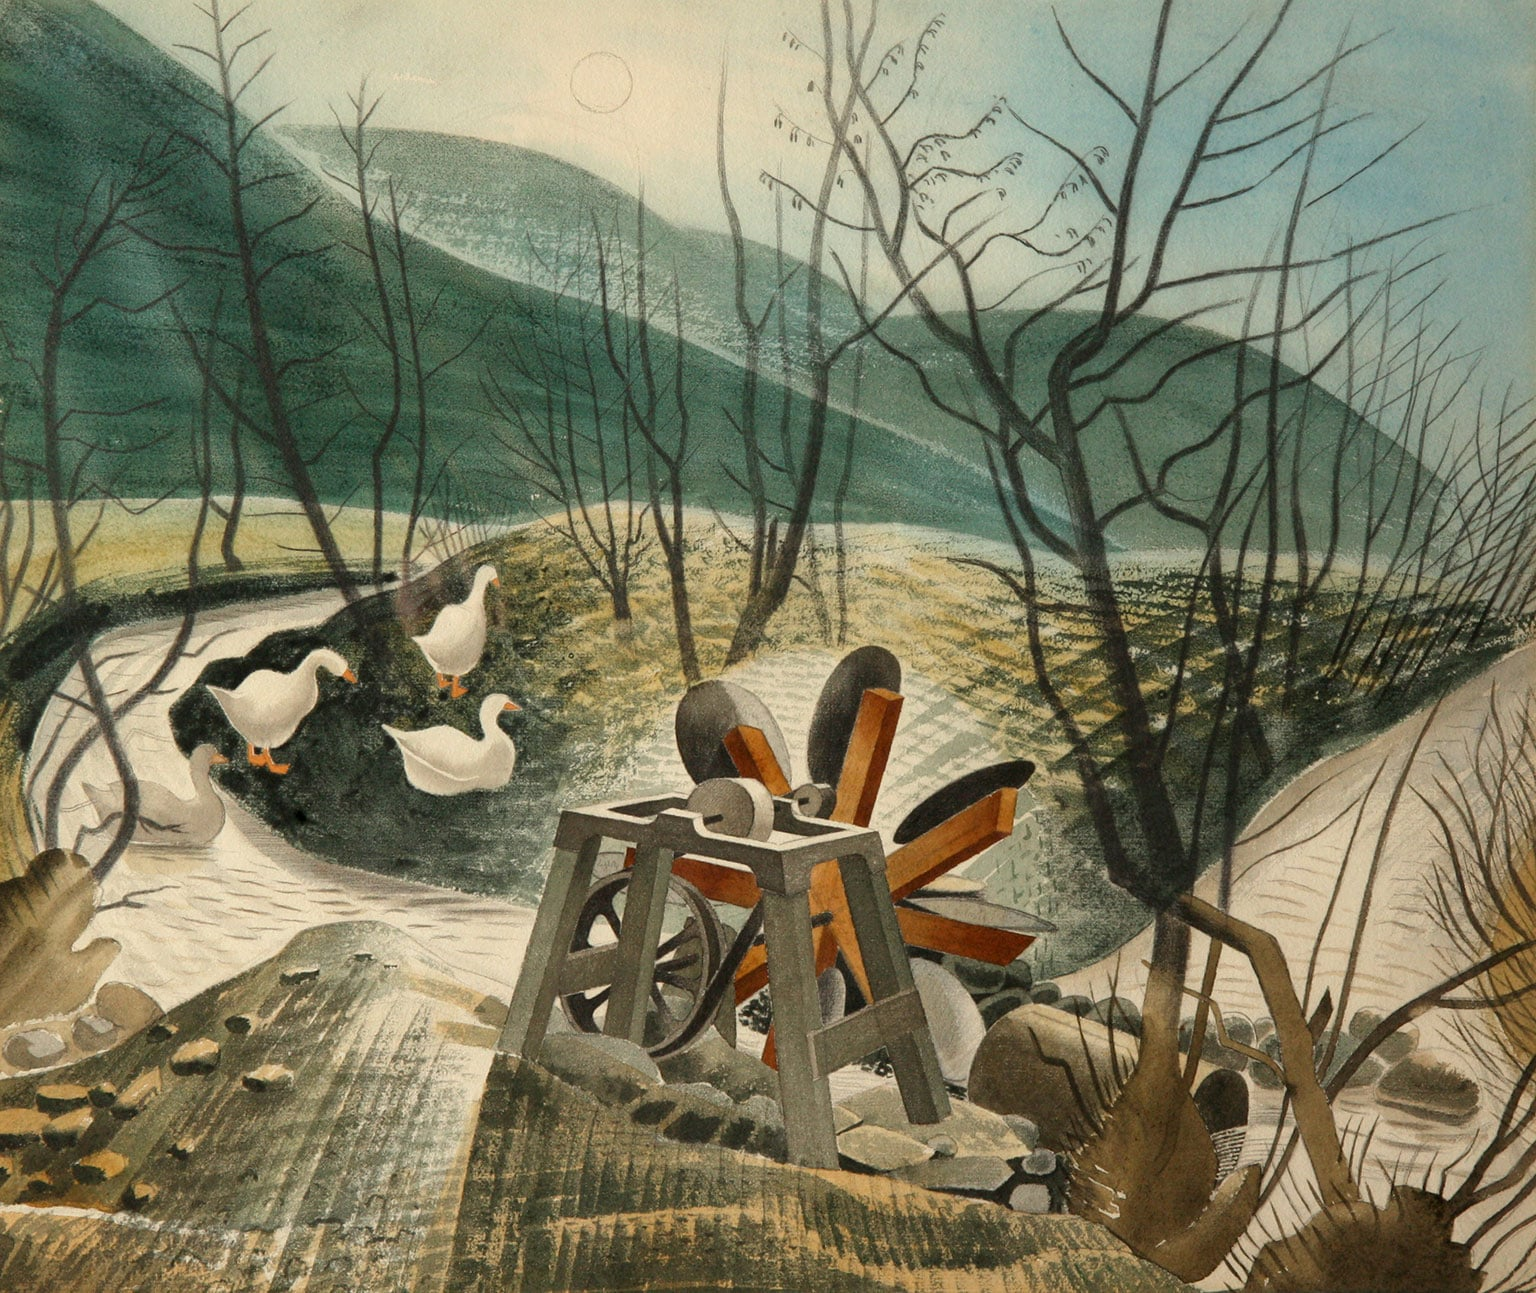 2. Ravilious, Dulwich Picture Gallery, 50% off with National Art Pass - Eric Ravilious, The Waterwheel, 1938, Brecknock Museum